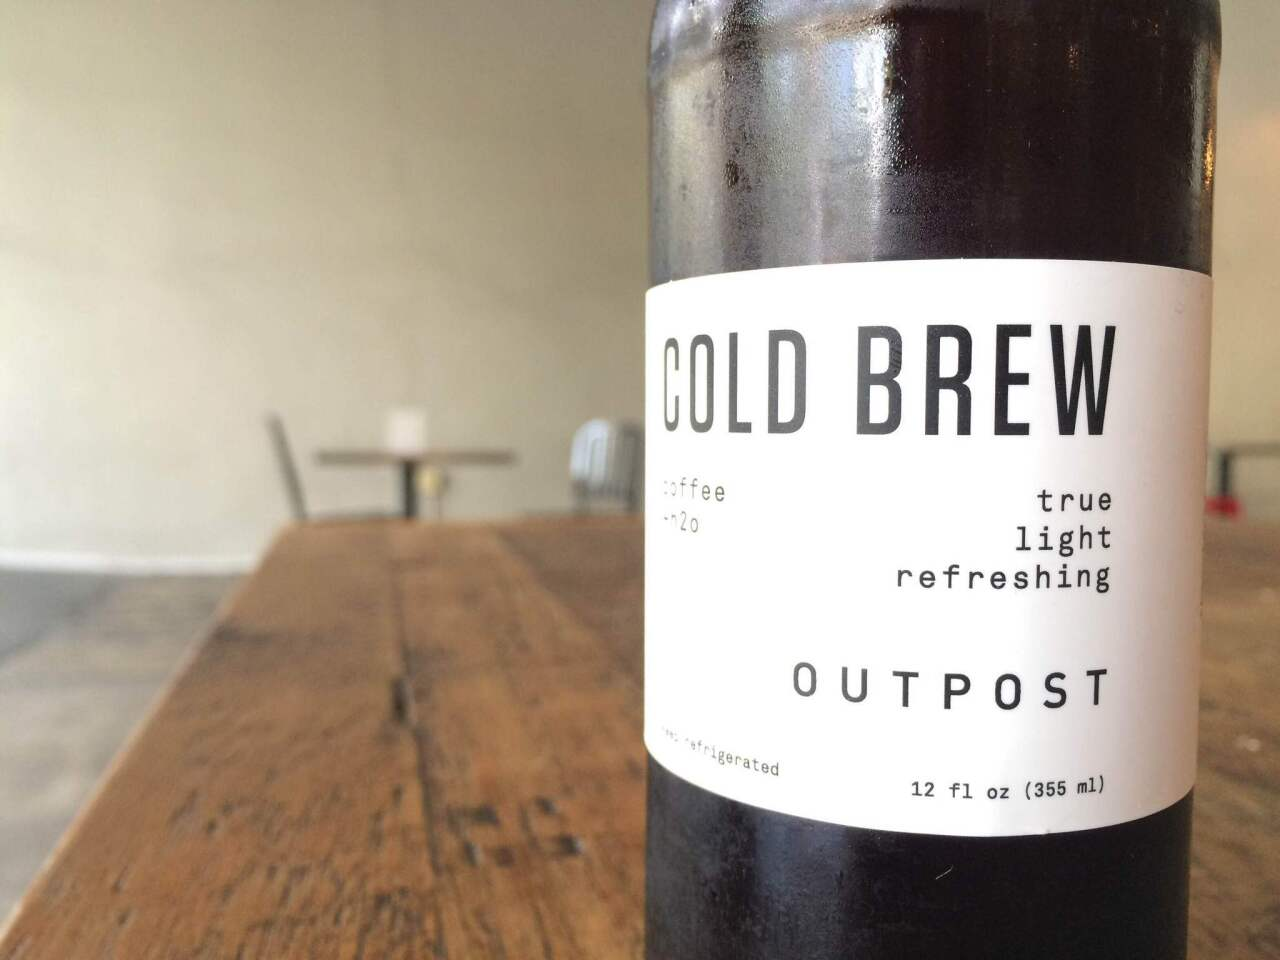 Founded by a crew of former Handsome Coffee Roasters employees, Outpost cold brews specialty coffee beans for 24 hours.